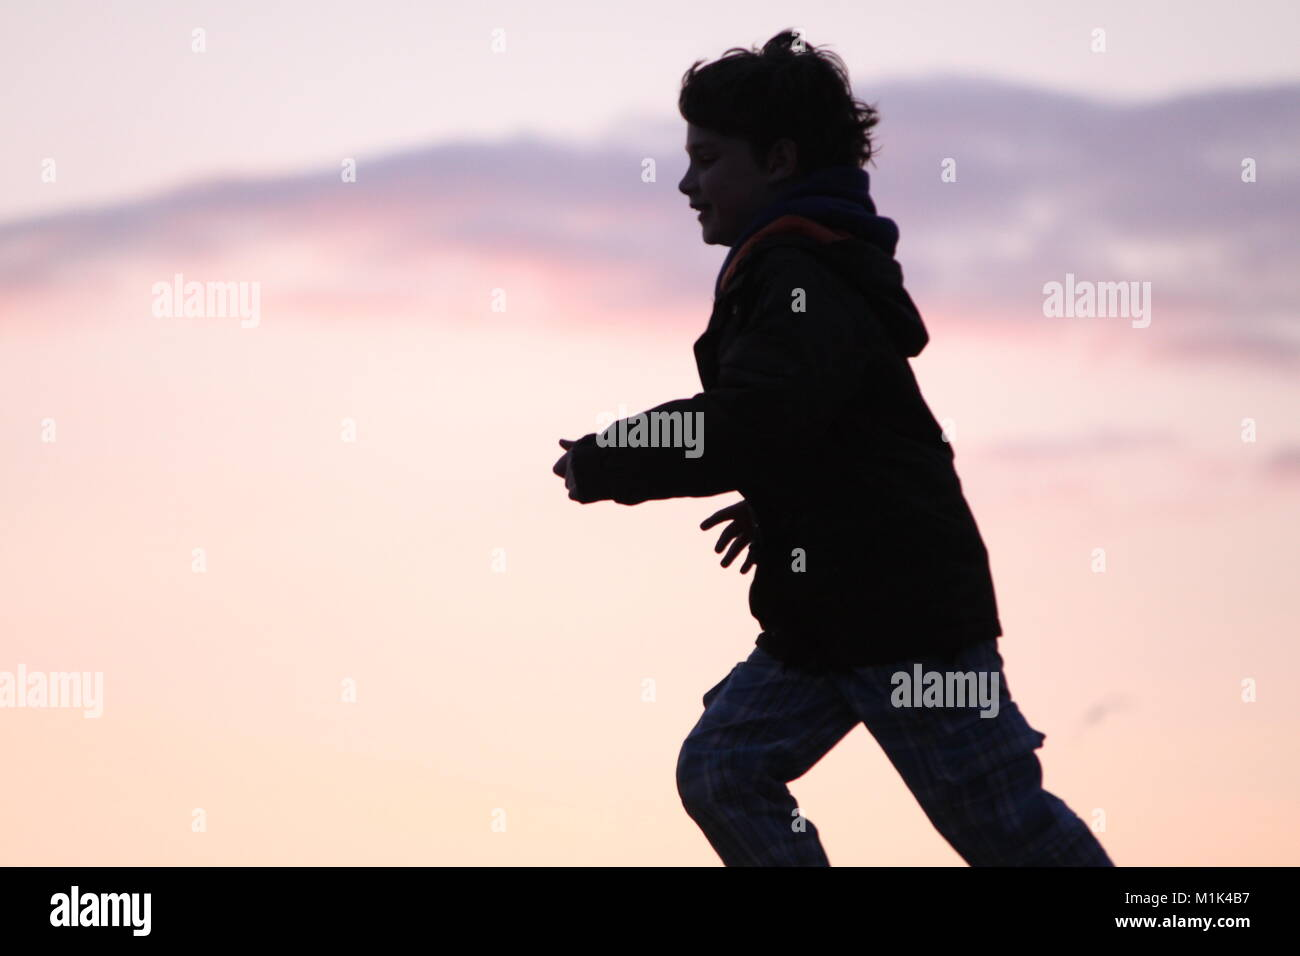 Silhouette of young boy, child running - Stock Image